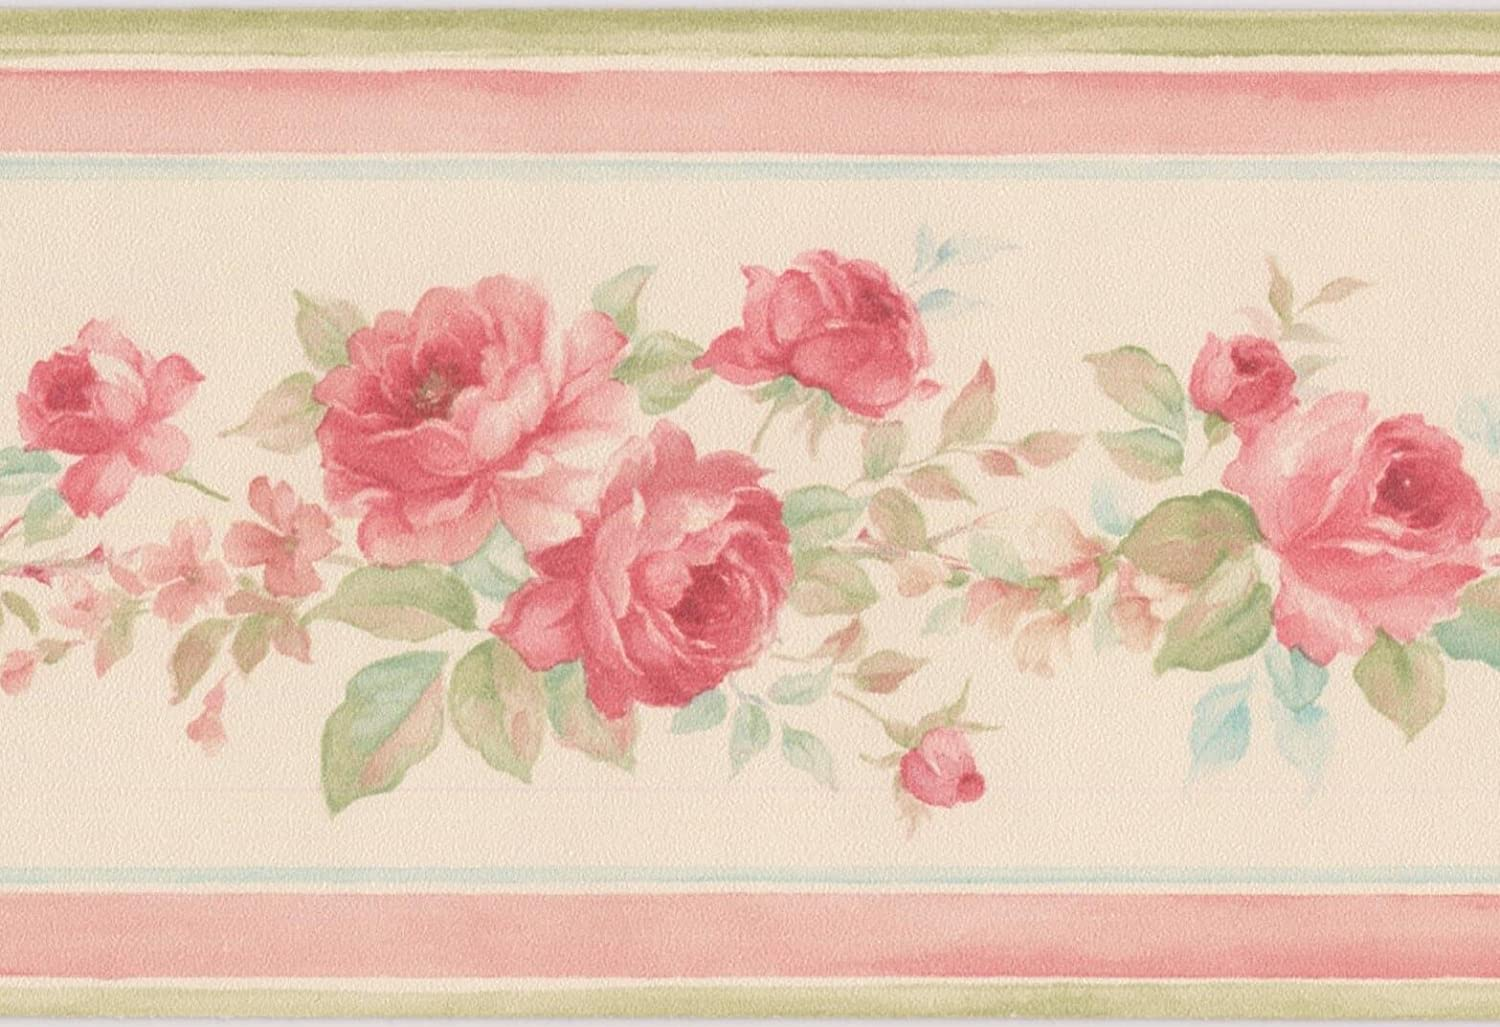 Red Roses In Bouquet Creme White Floral Wallpaper Border Retro